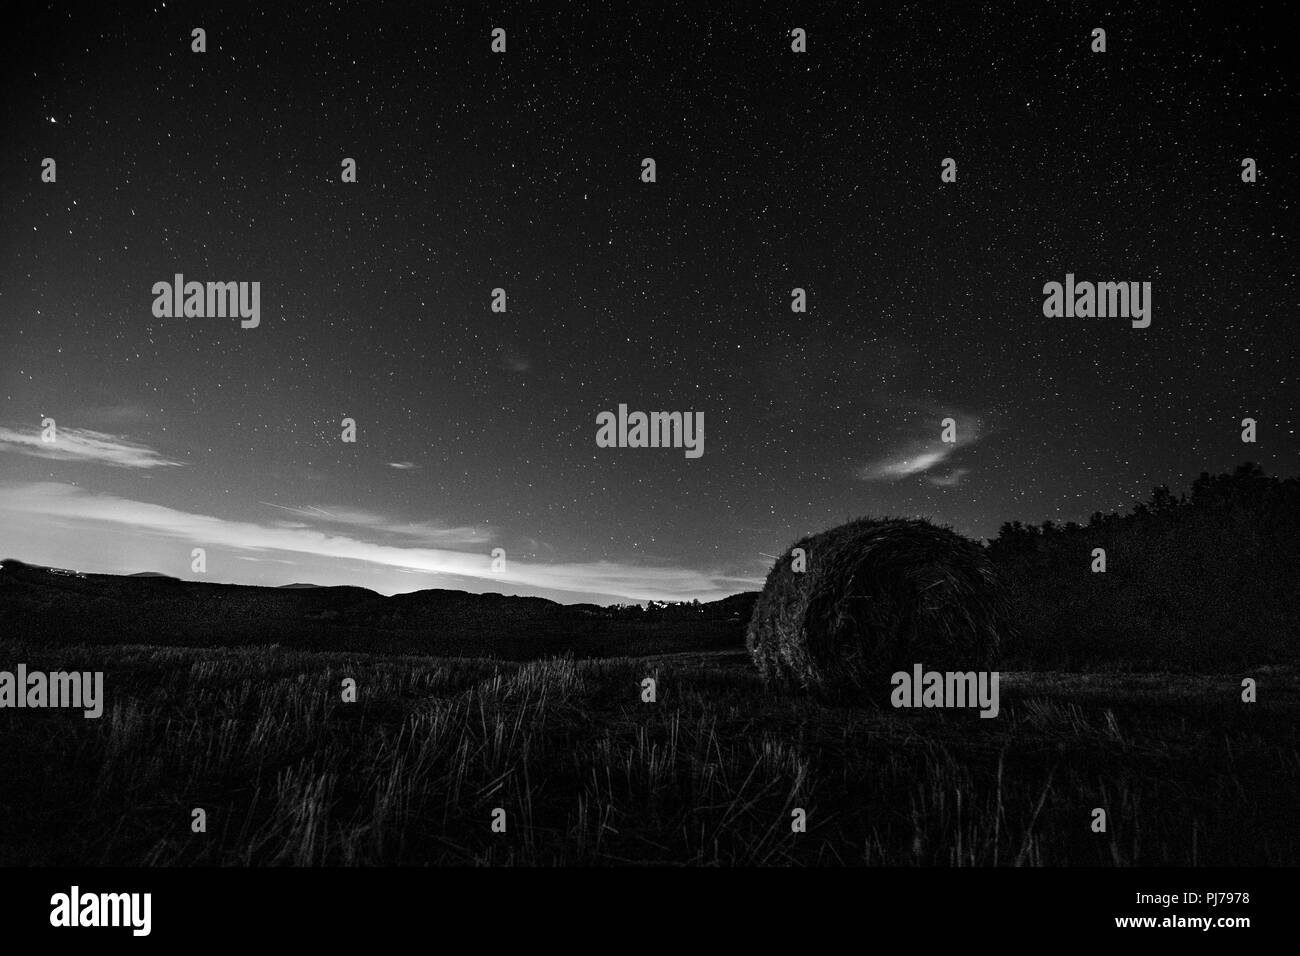 Beautiful view of starred night sky with clouds over a cultivated field with hay bale - Stock Image